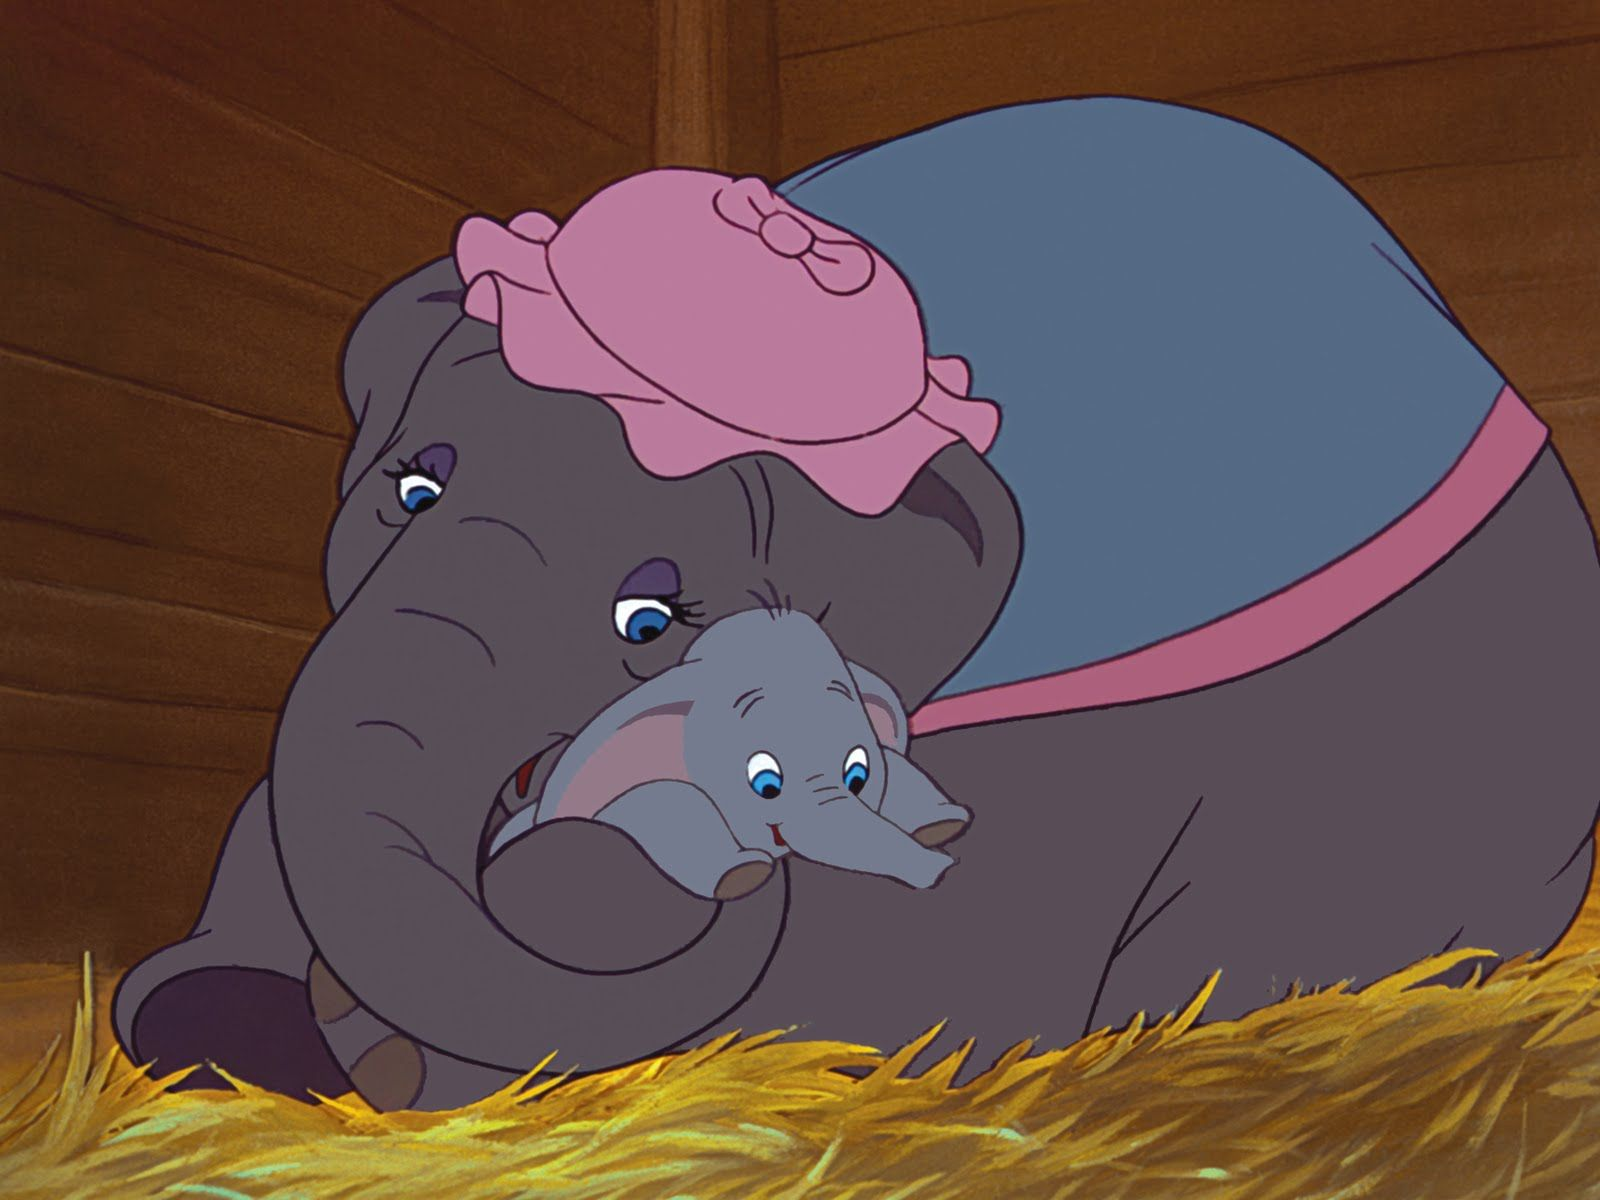 1016959-disney-developing-live-action-dumbo-feature.jpg 1.600×1.200 pixels